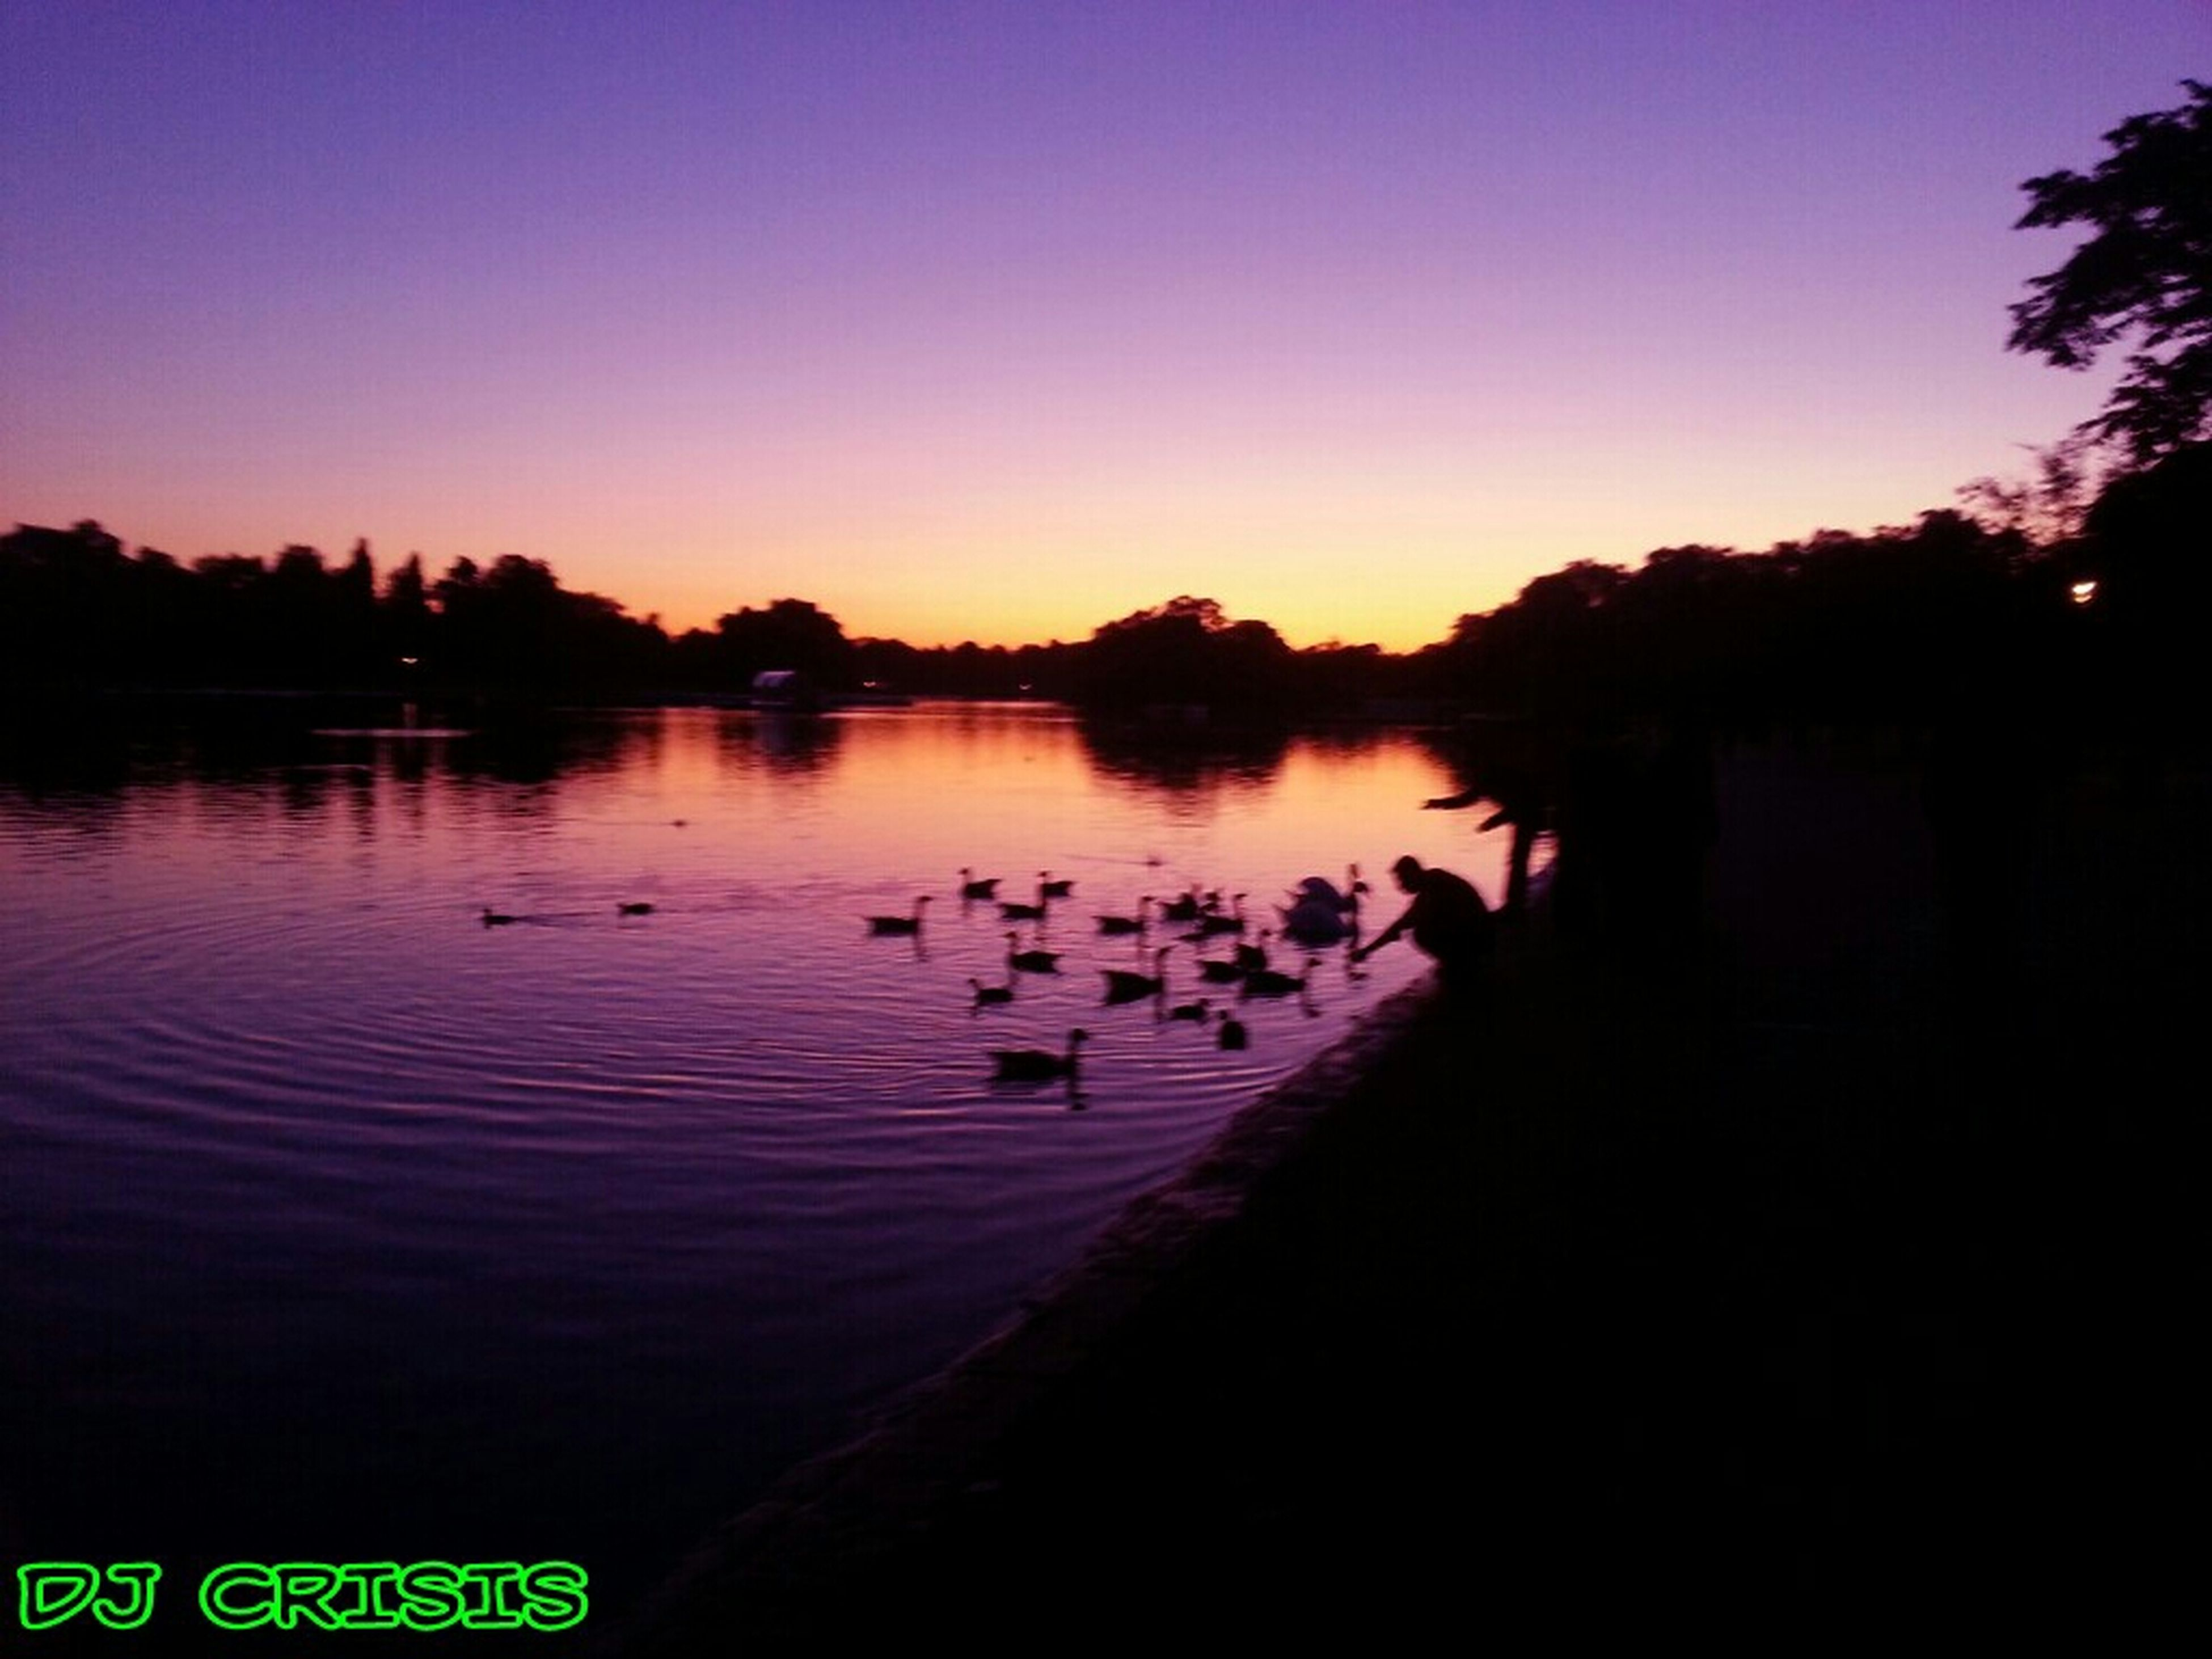 animal themes, bird, water, animals in the wild, wildlife, sunset, lake, clear sky, reflection, silhouette, tranquil scene, nature, beauty in nature, tranquility, scenics, copy space, tree, duck, river